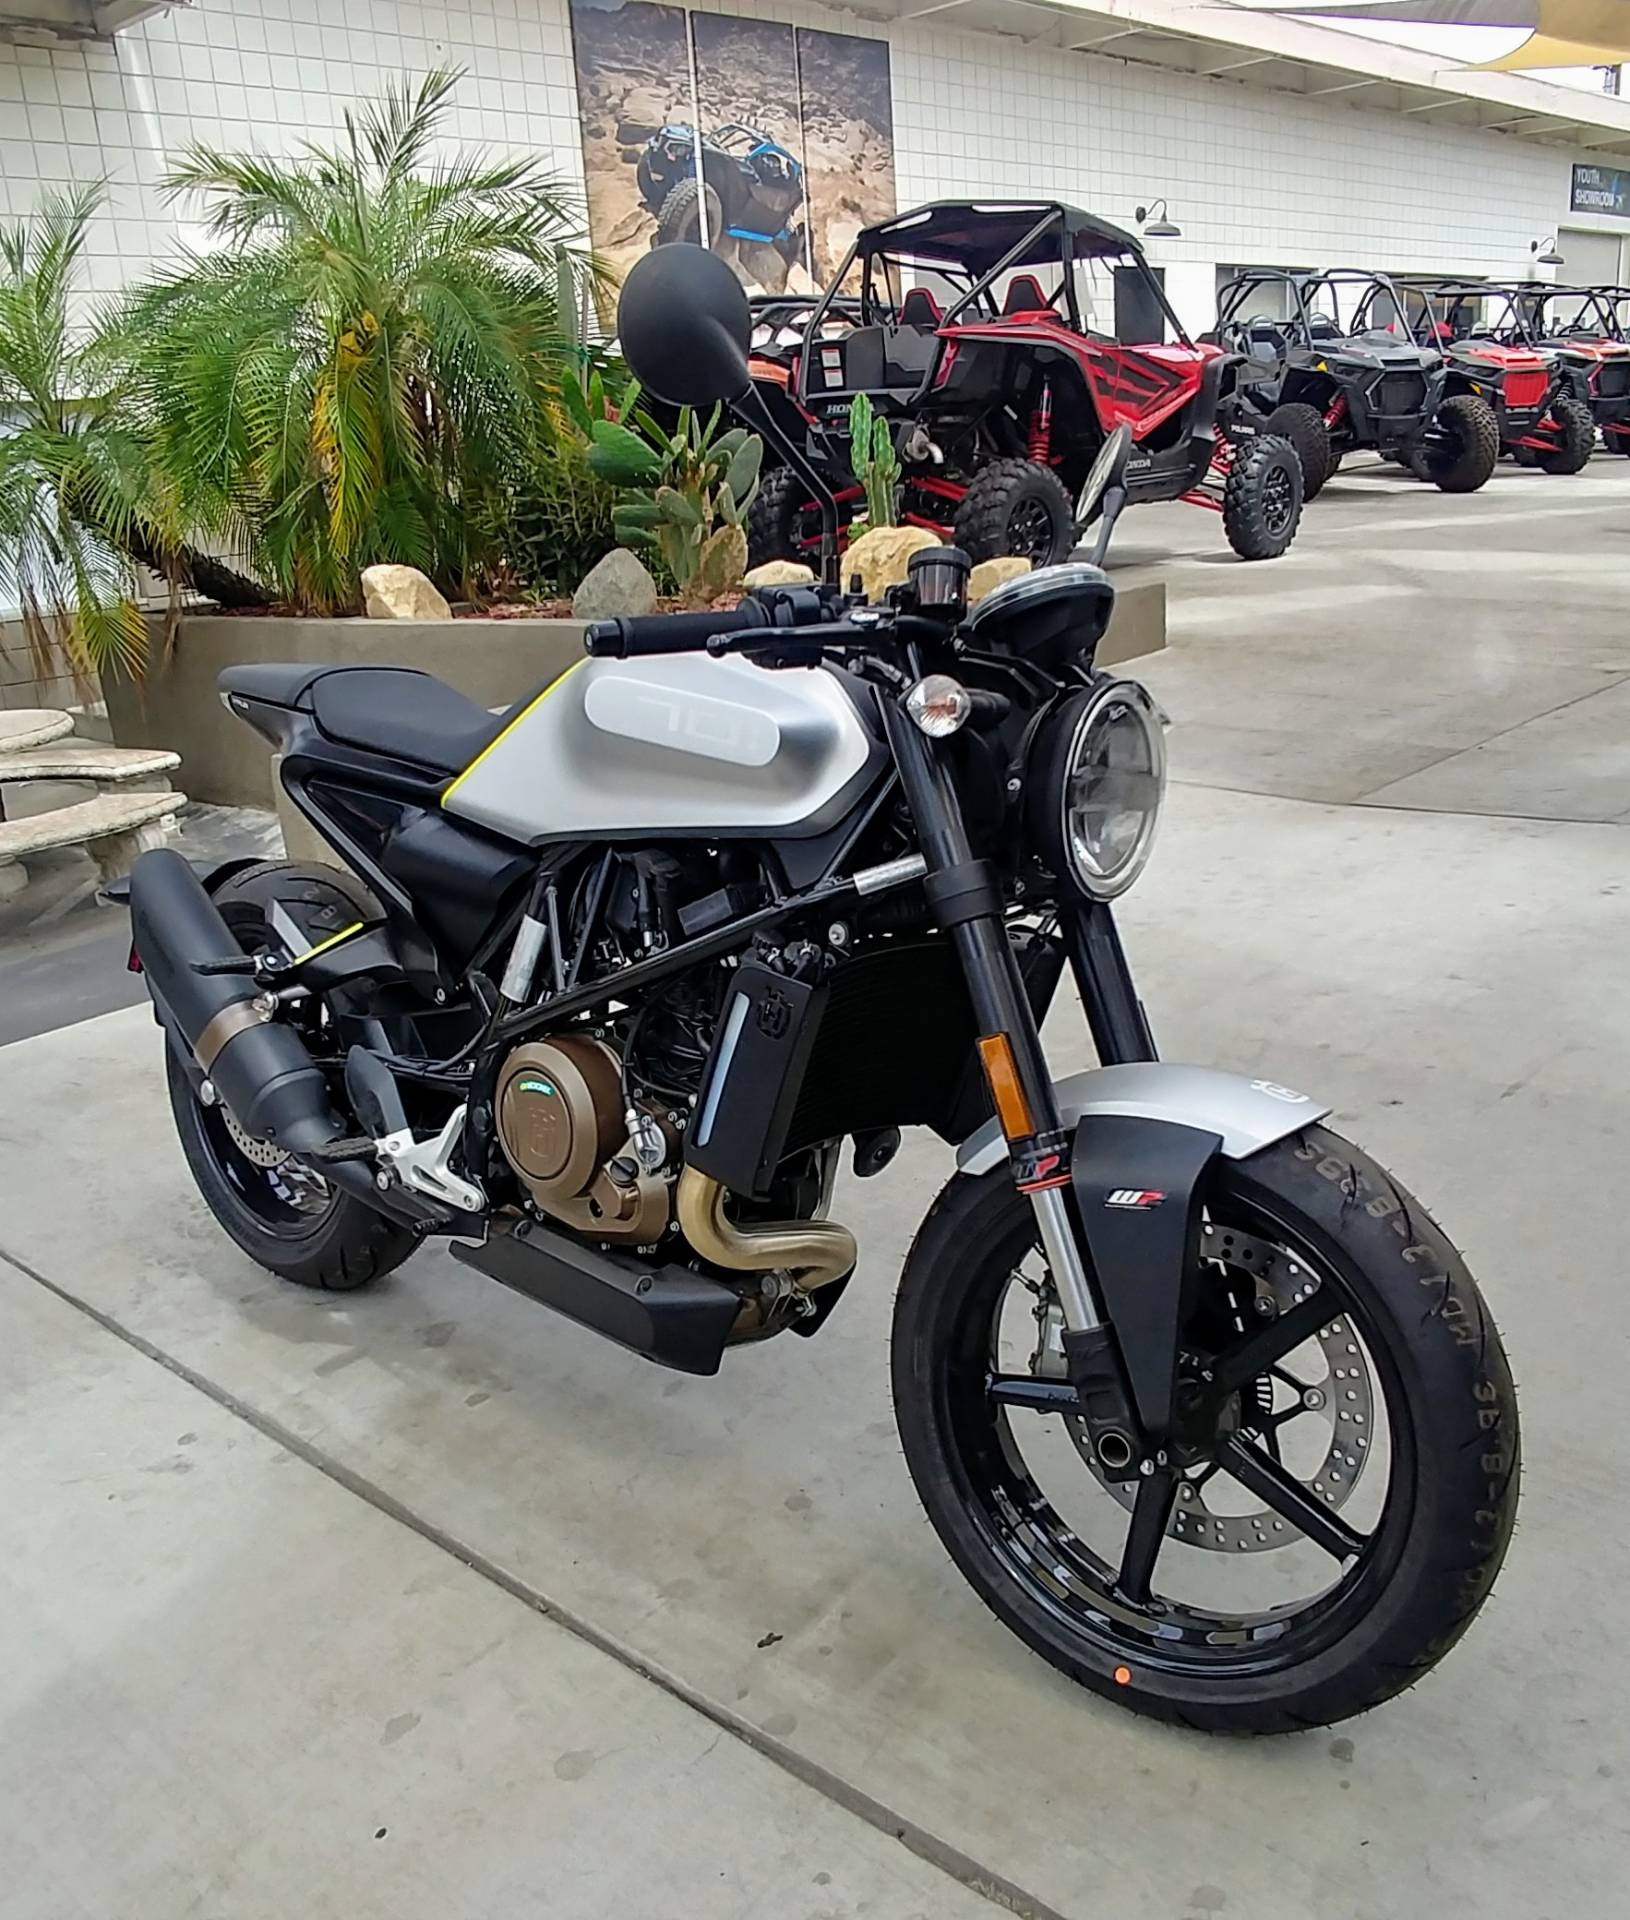 2018 Husqvarna Vitpilen 701 in Ontario, California - Photo 3